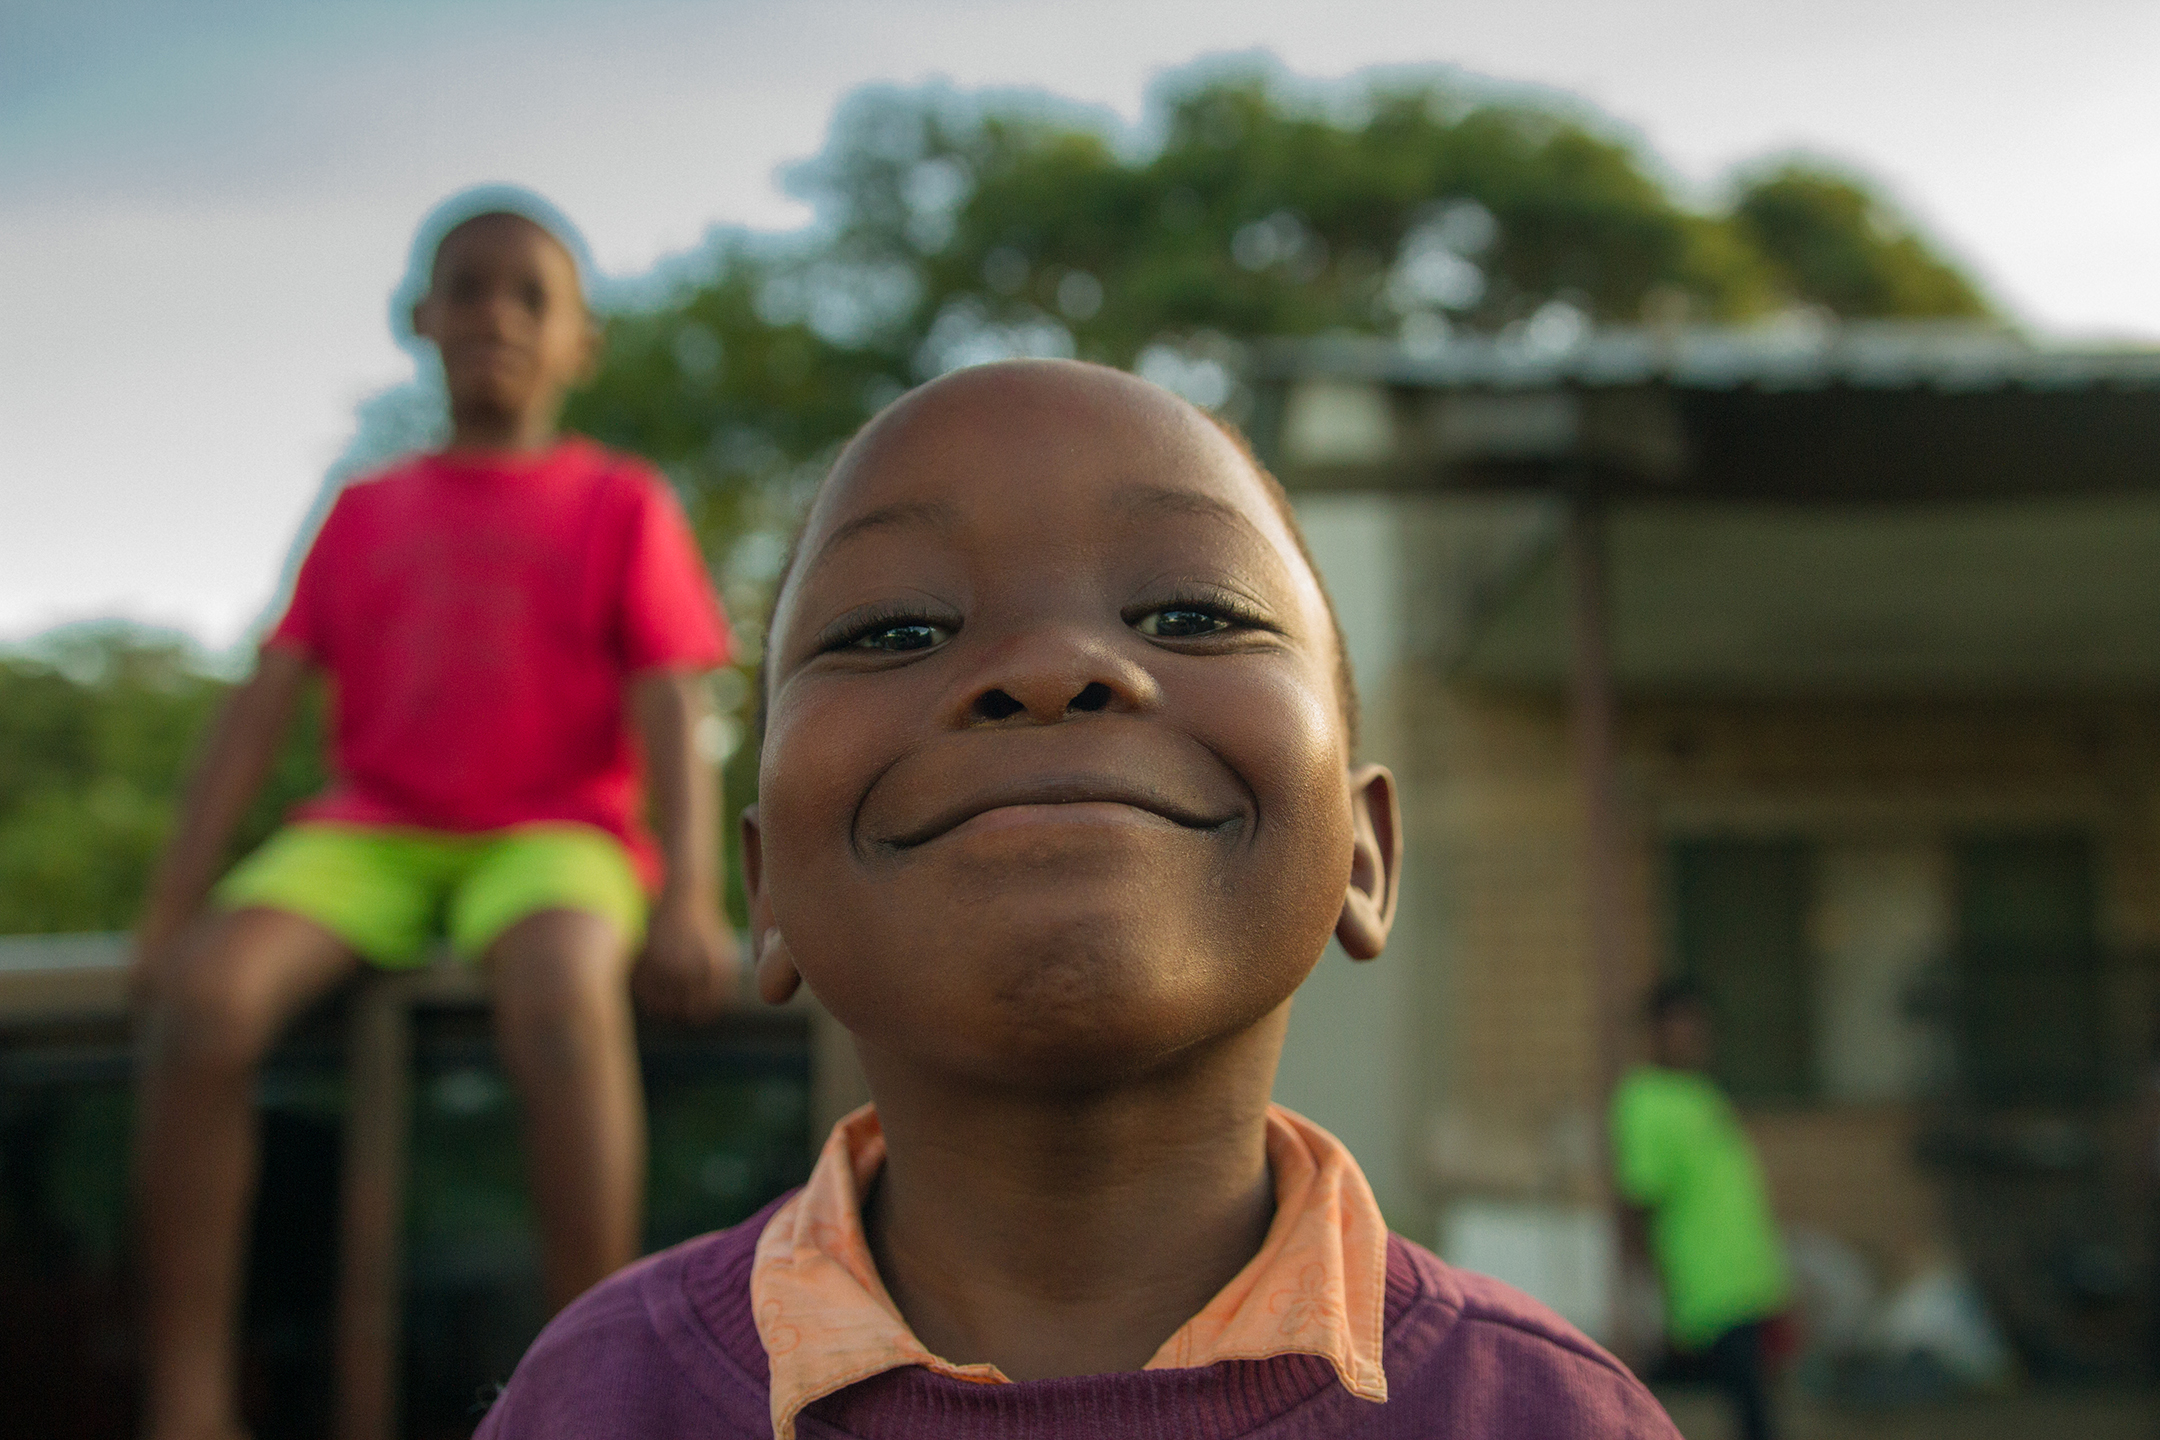 A family centered village. - There is a great need here in Zambia to look after vulnerable and orphaned children affected by HIV/AIDS. Our village emphasizes family and is structured to support kids that range from toddlers to teenagers. We want them to know they are loved, valuable and have a calling from God.